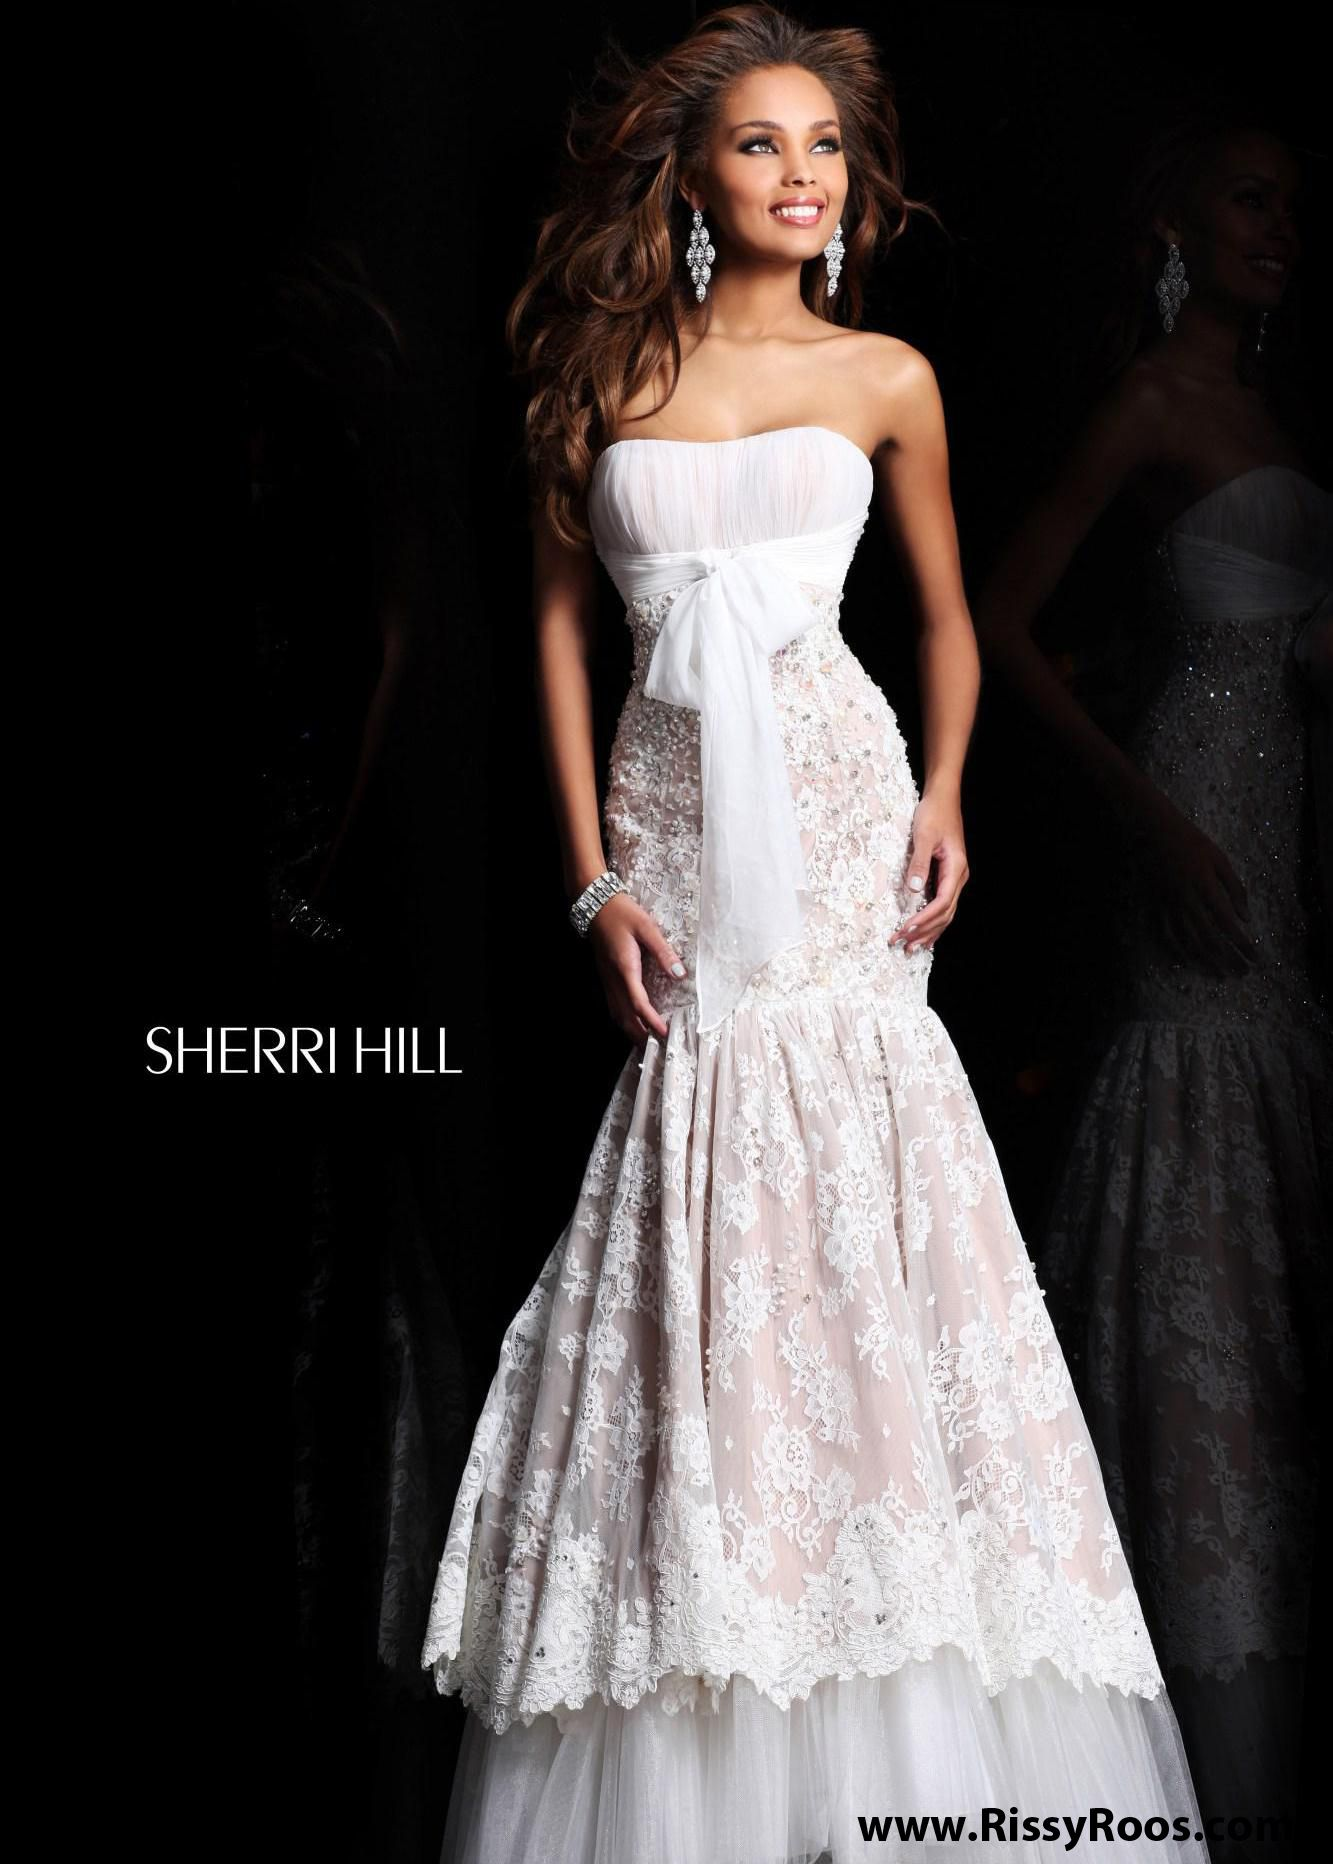 Sherri hill ivory lace mermaid prom dresses available now at